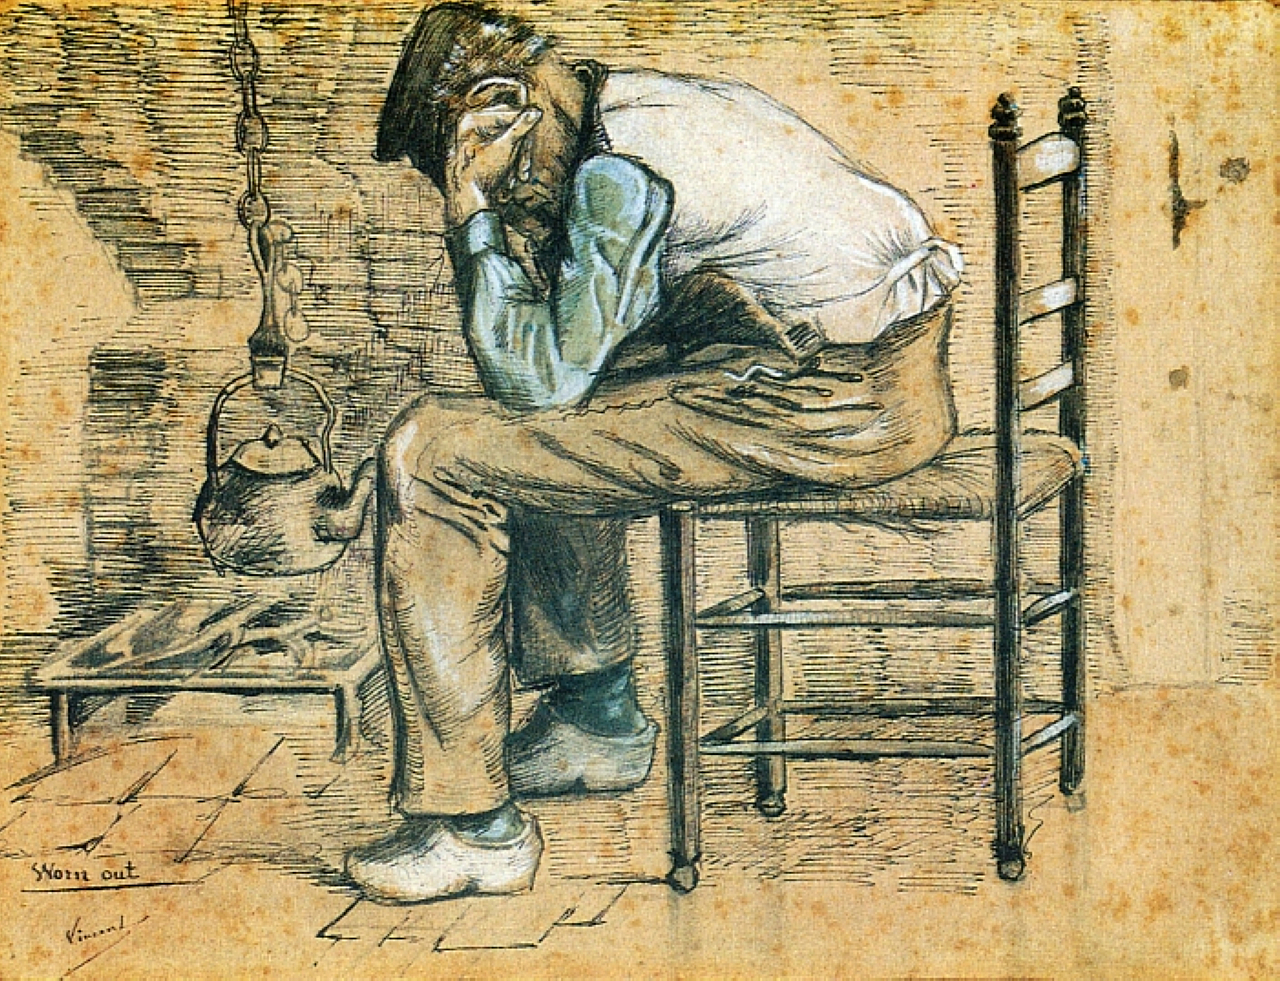 Peasant Sitting by the Fireplace (Worn Out), 1881